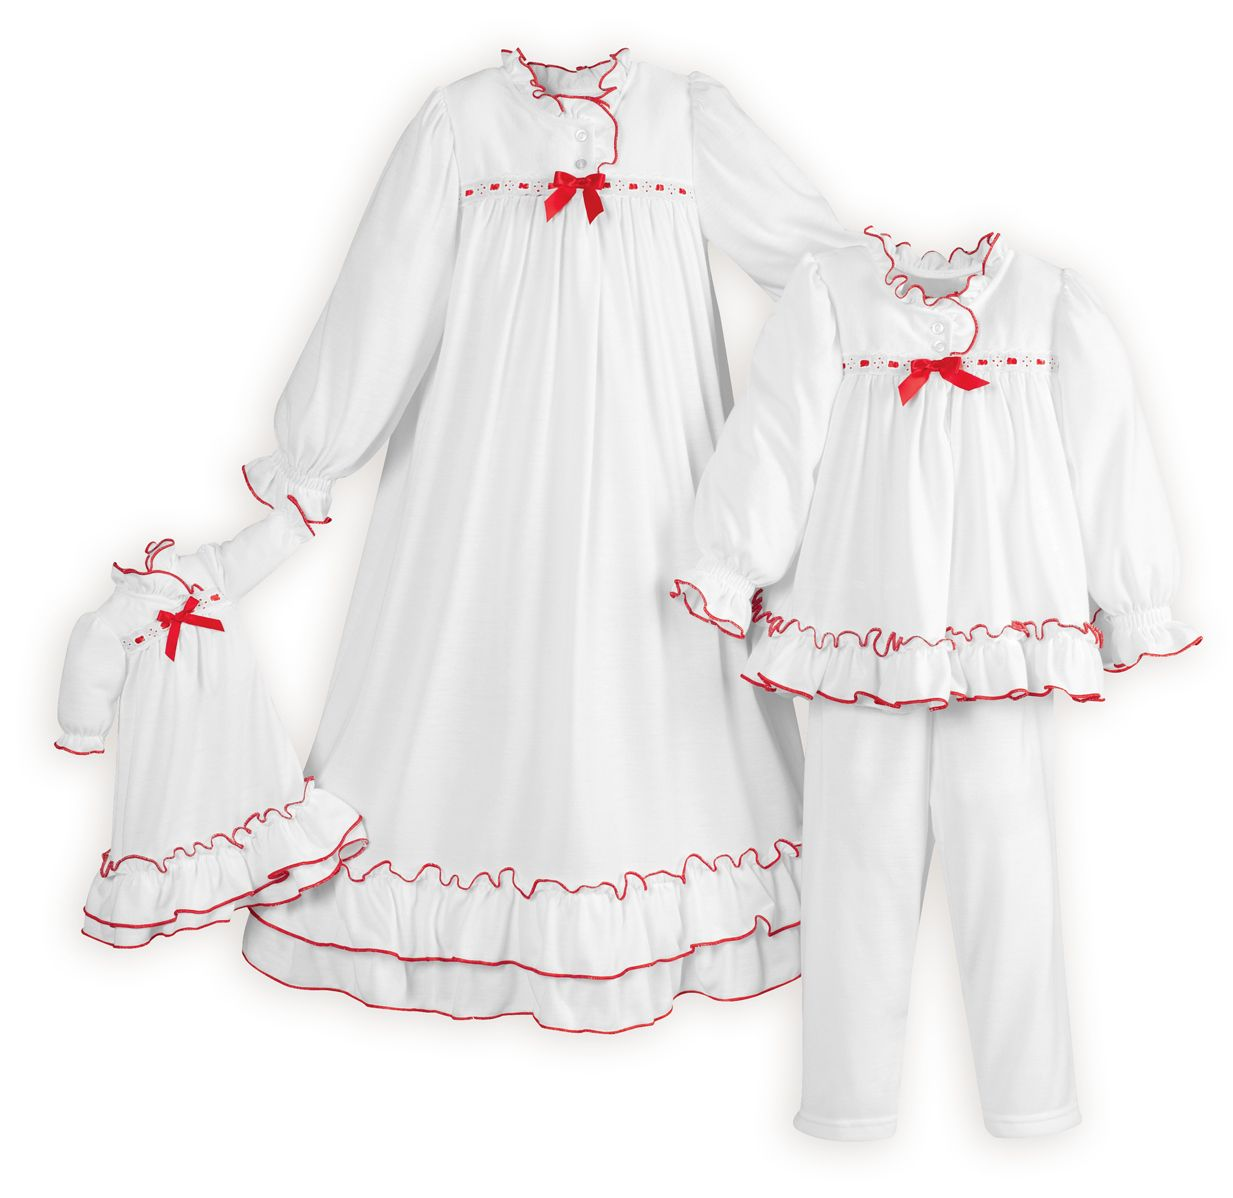 Clara S White Nightgown Amp Pj S Night Gowns Christmas